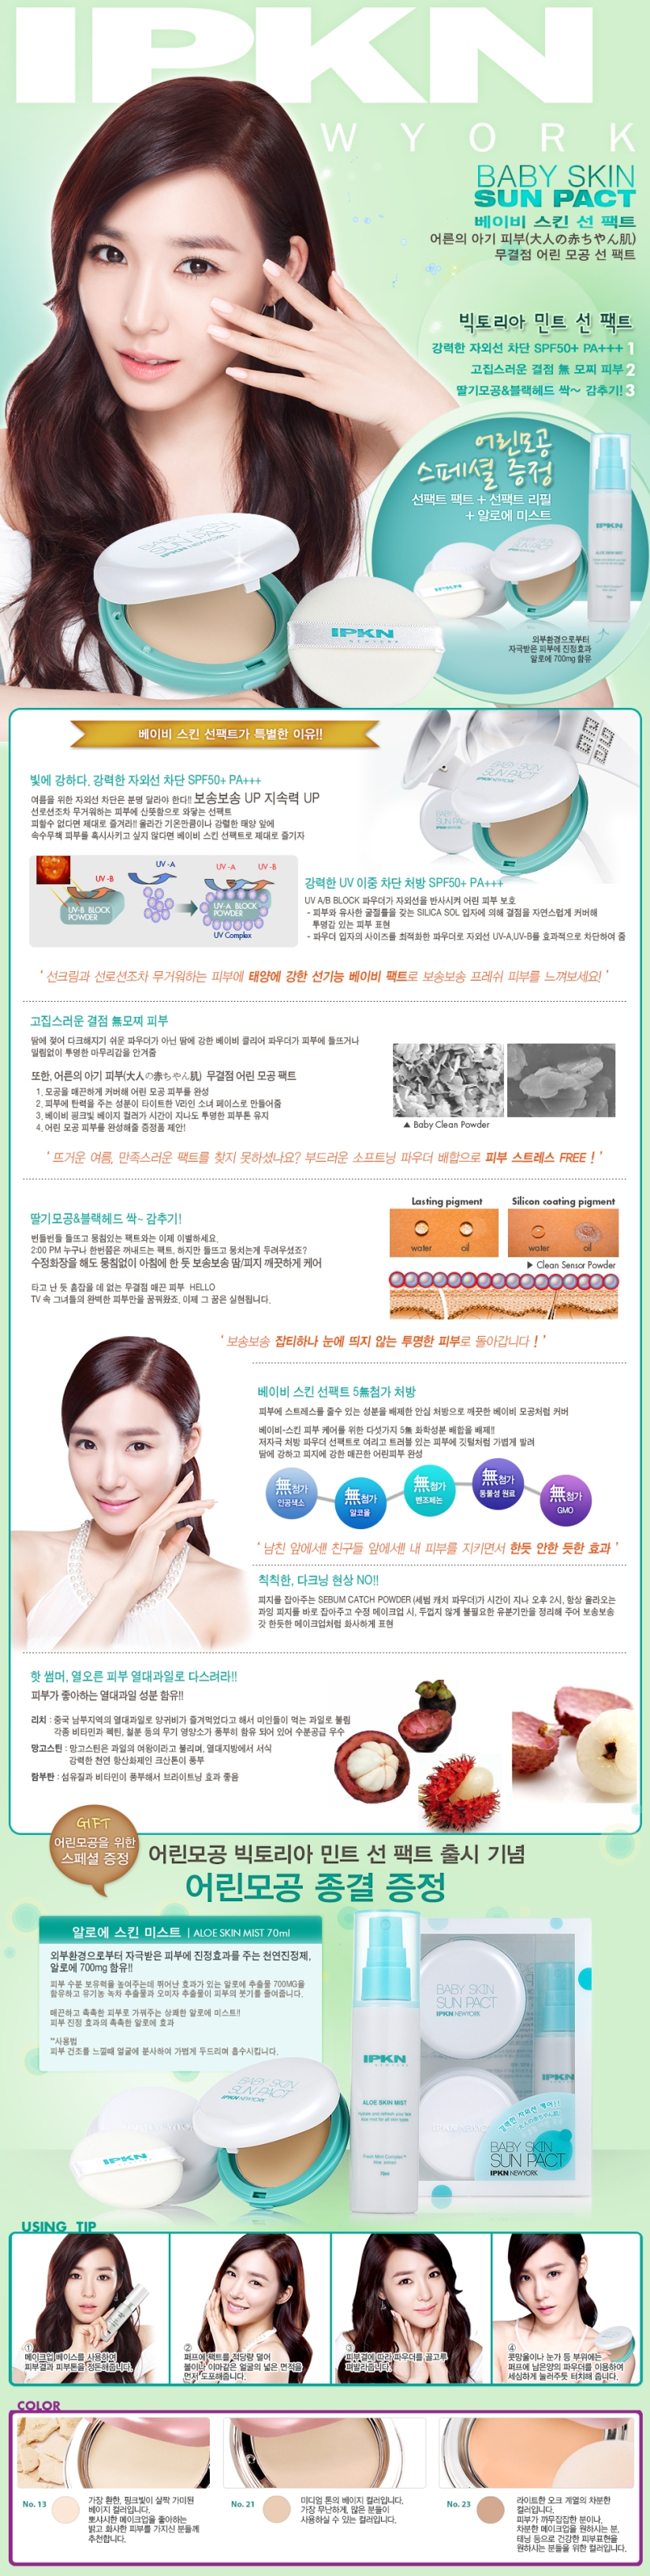 [140724] Tiffany (SNSD) New Picture for IPKN CF [19]